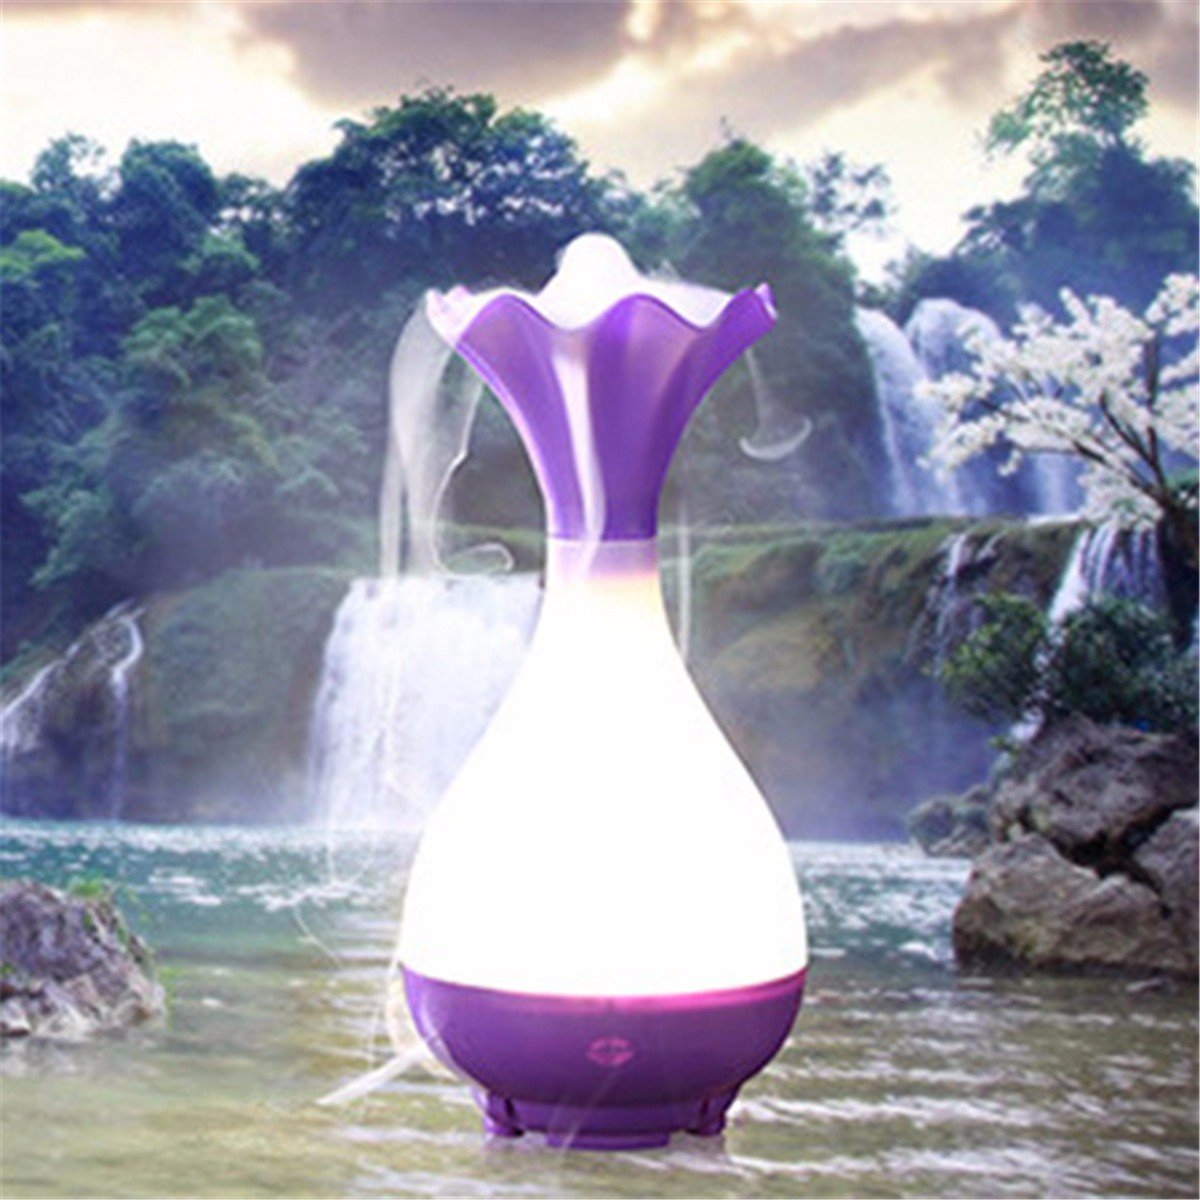 Essential Oil Diffuser LuckyFine USB Humidifier Jade Vase Aromatherapy Diffuser Mist Maker with Light Purple